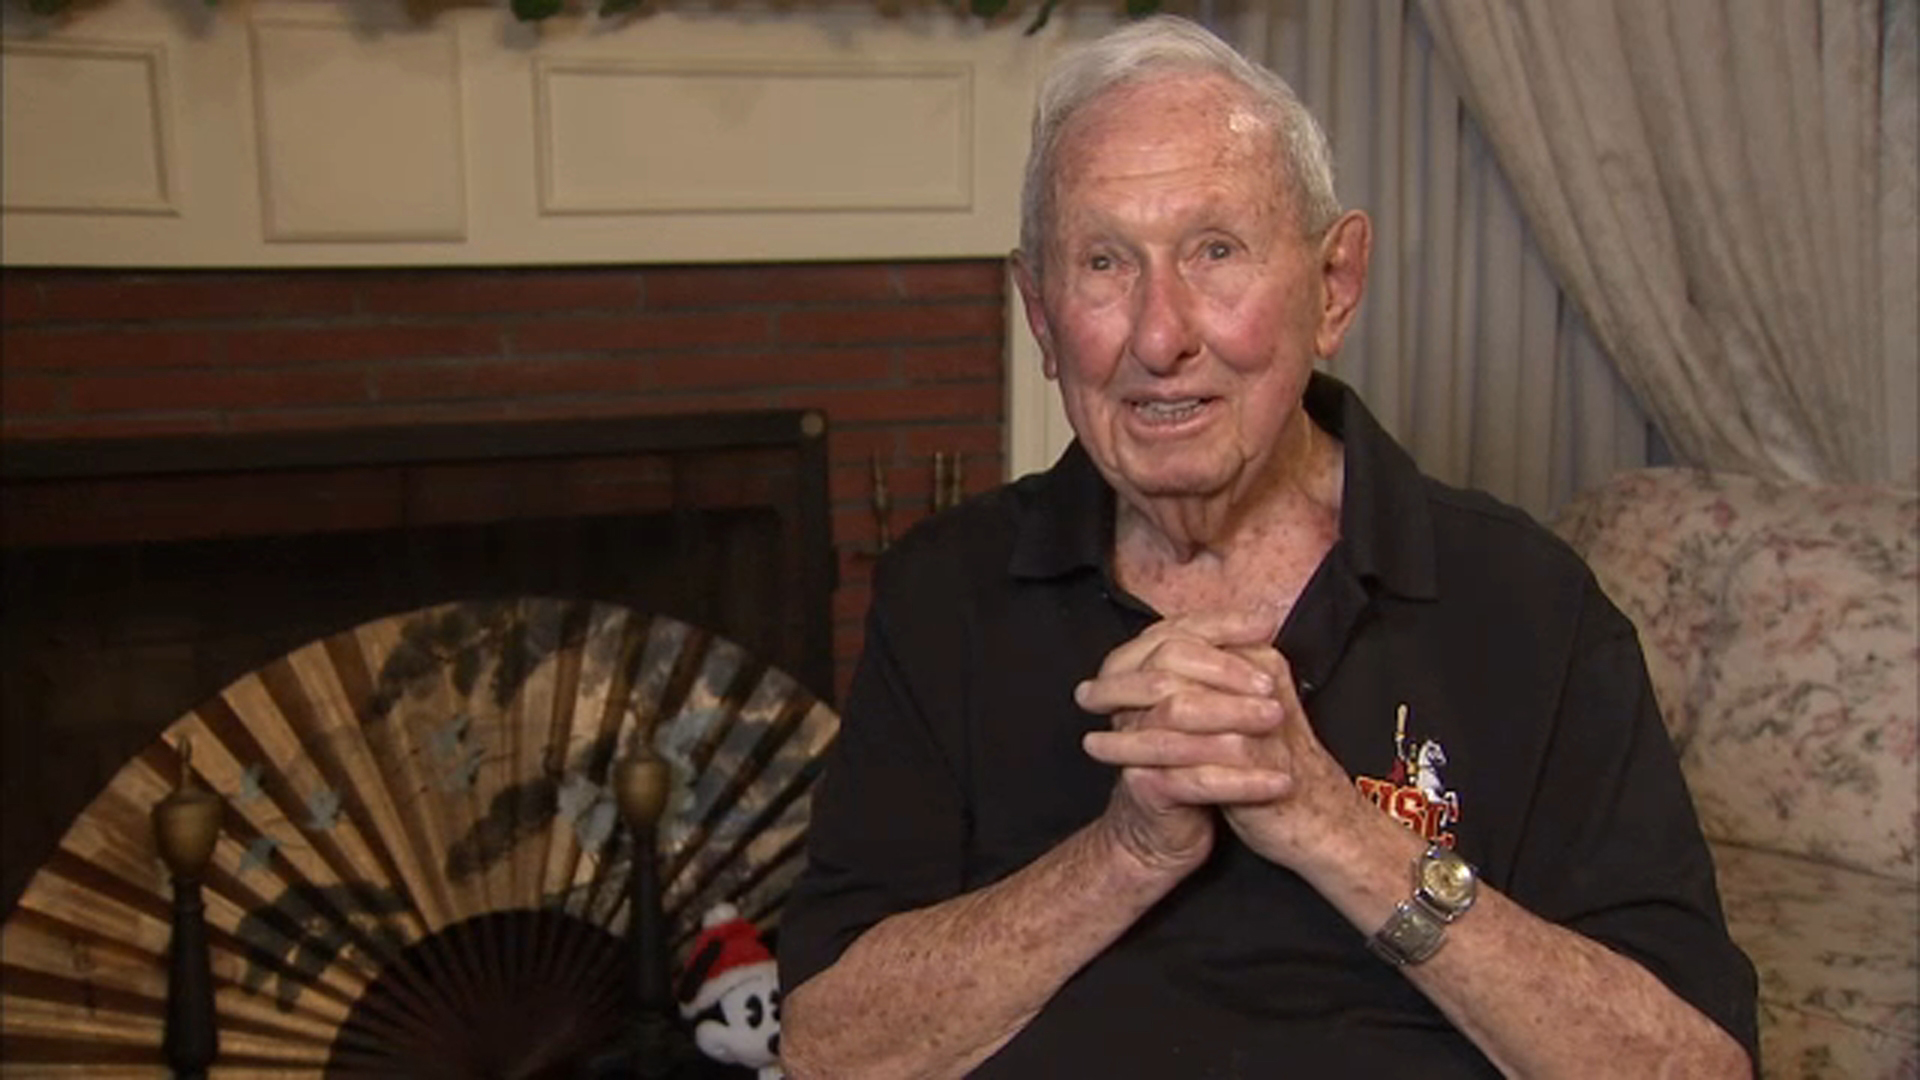 Ivan Cregger, a World War II veteran who now lives in Burbank, remarkably survived the Ploesti Air Raid in 1943.